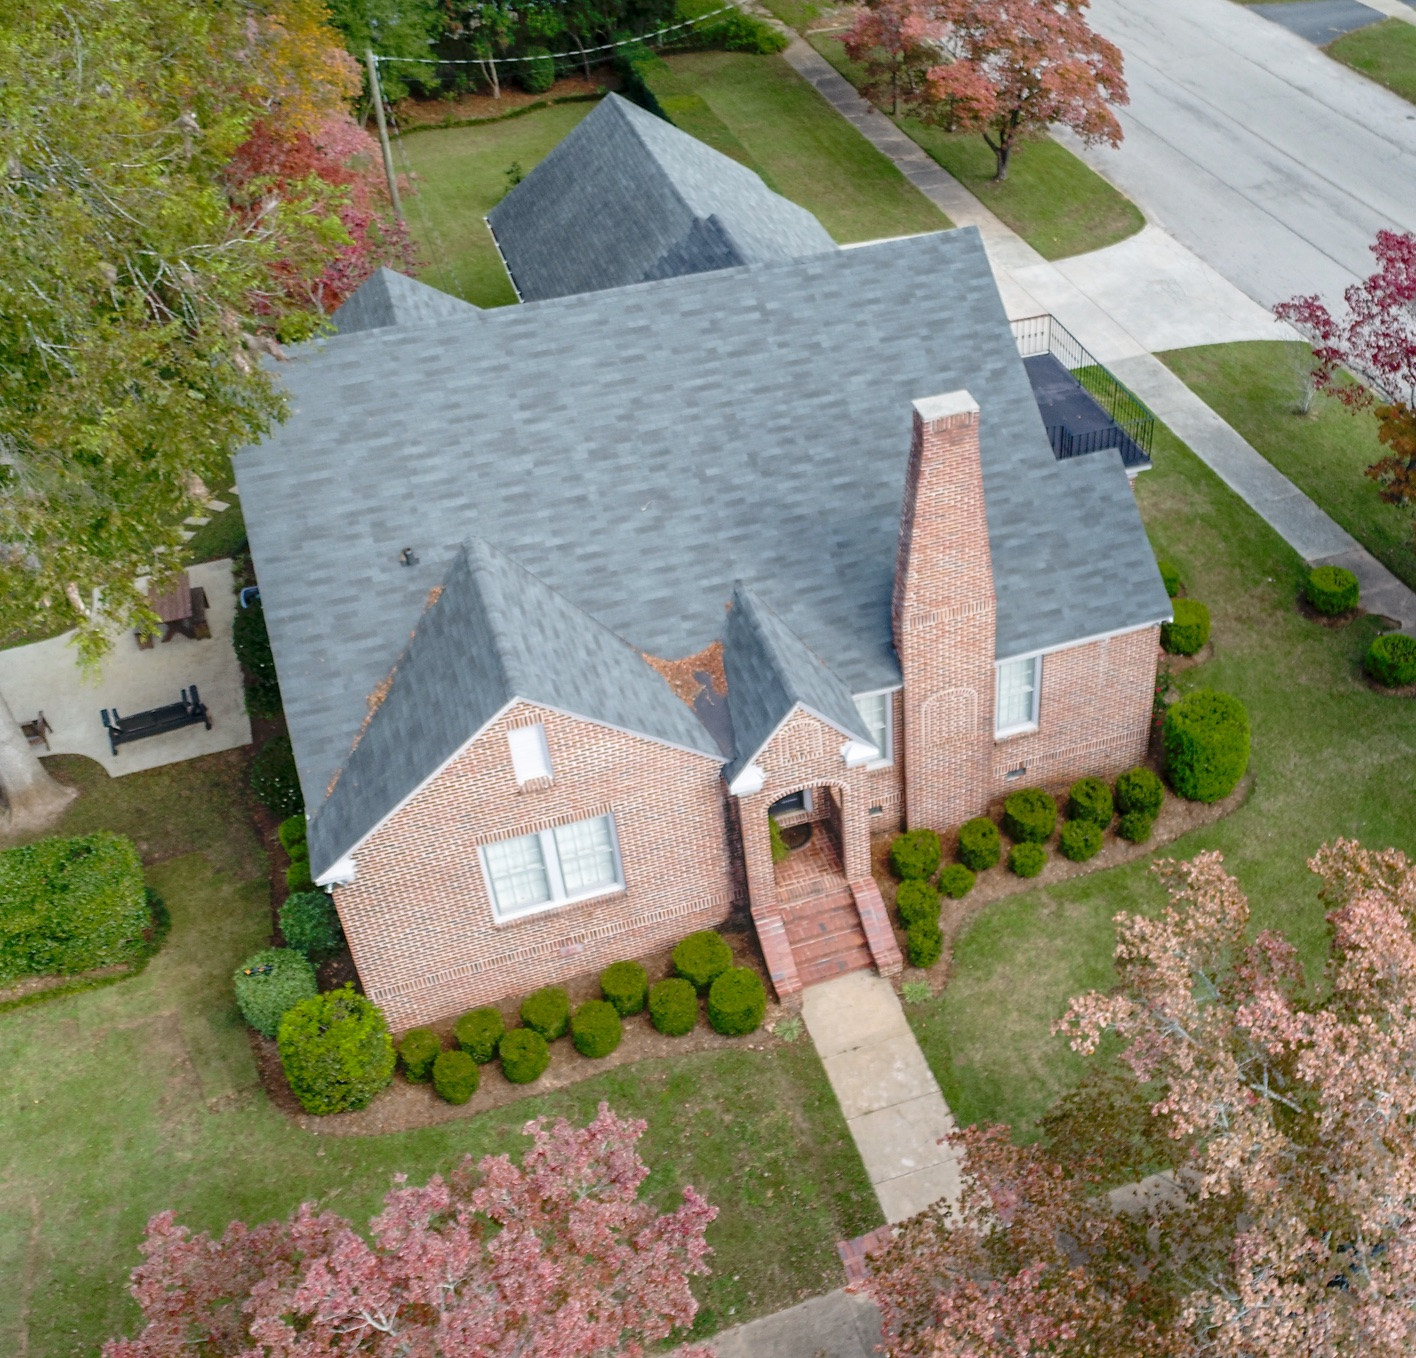 VIDEO TOUR$250 - Aerial and interior. Approximately 2 minute video with 2 business day delivery. Customized Google Earth satellite imagery.Includes 2 aerial photos. Listings over 10 acres add $50. Add 45 Aerial and Interior Photos optimized for GAMLS:$100